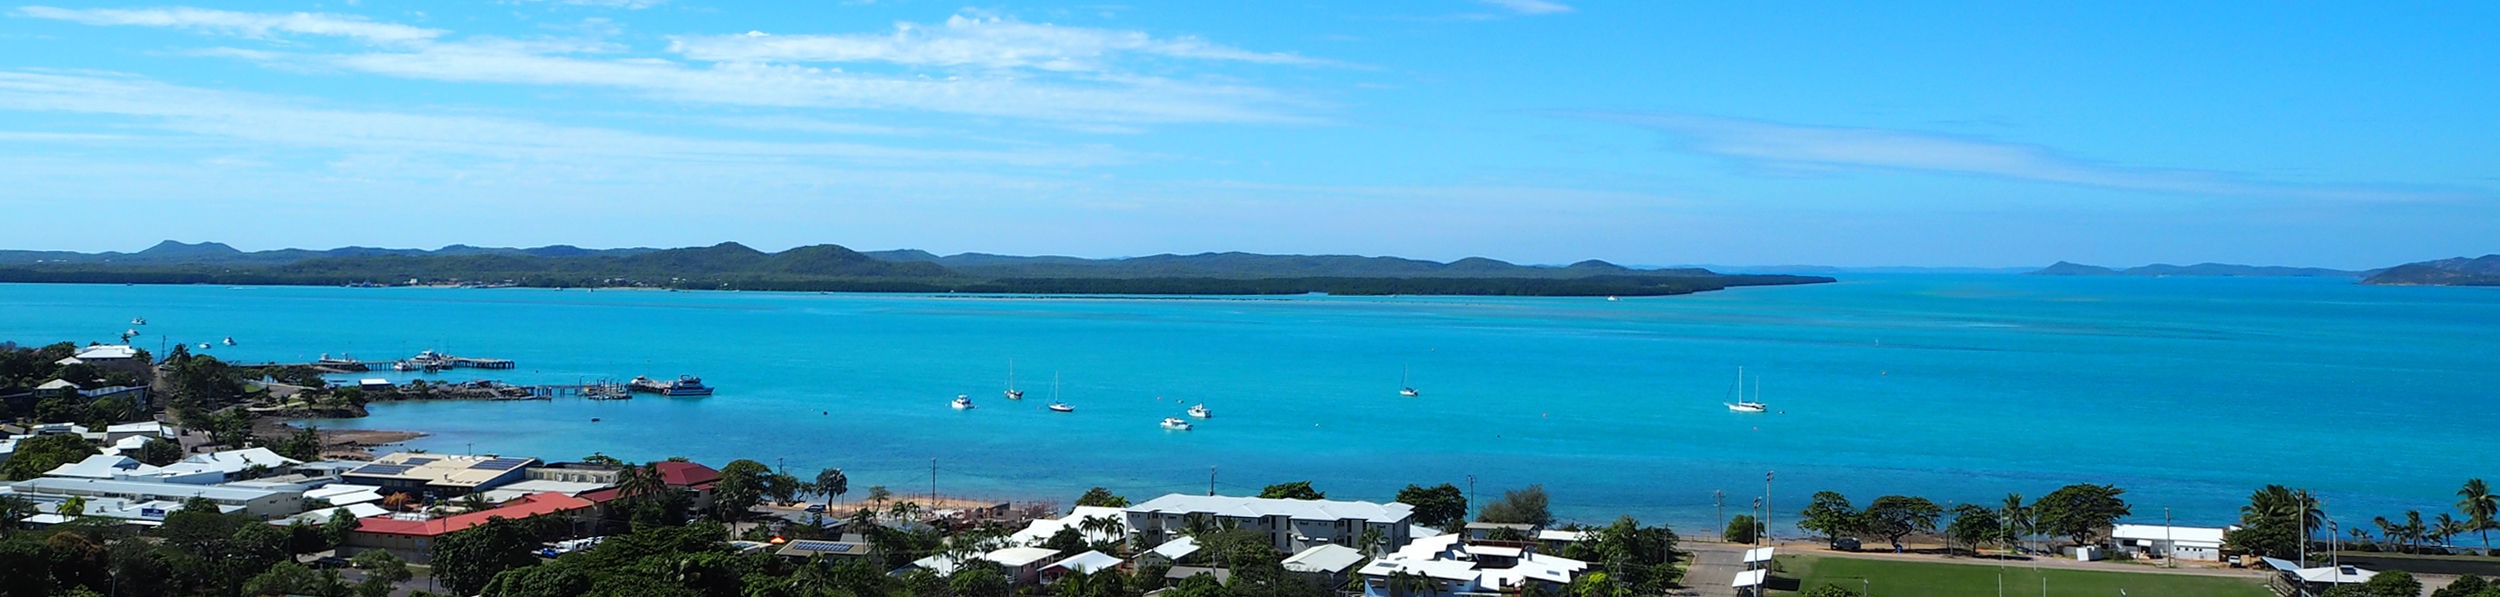 View from the historic Green Hill Fort on Thursday Island, looking south toward Horn Island and Zuna Island beyond.